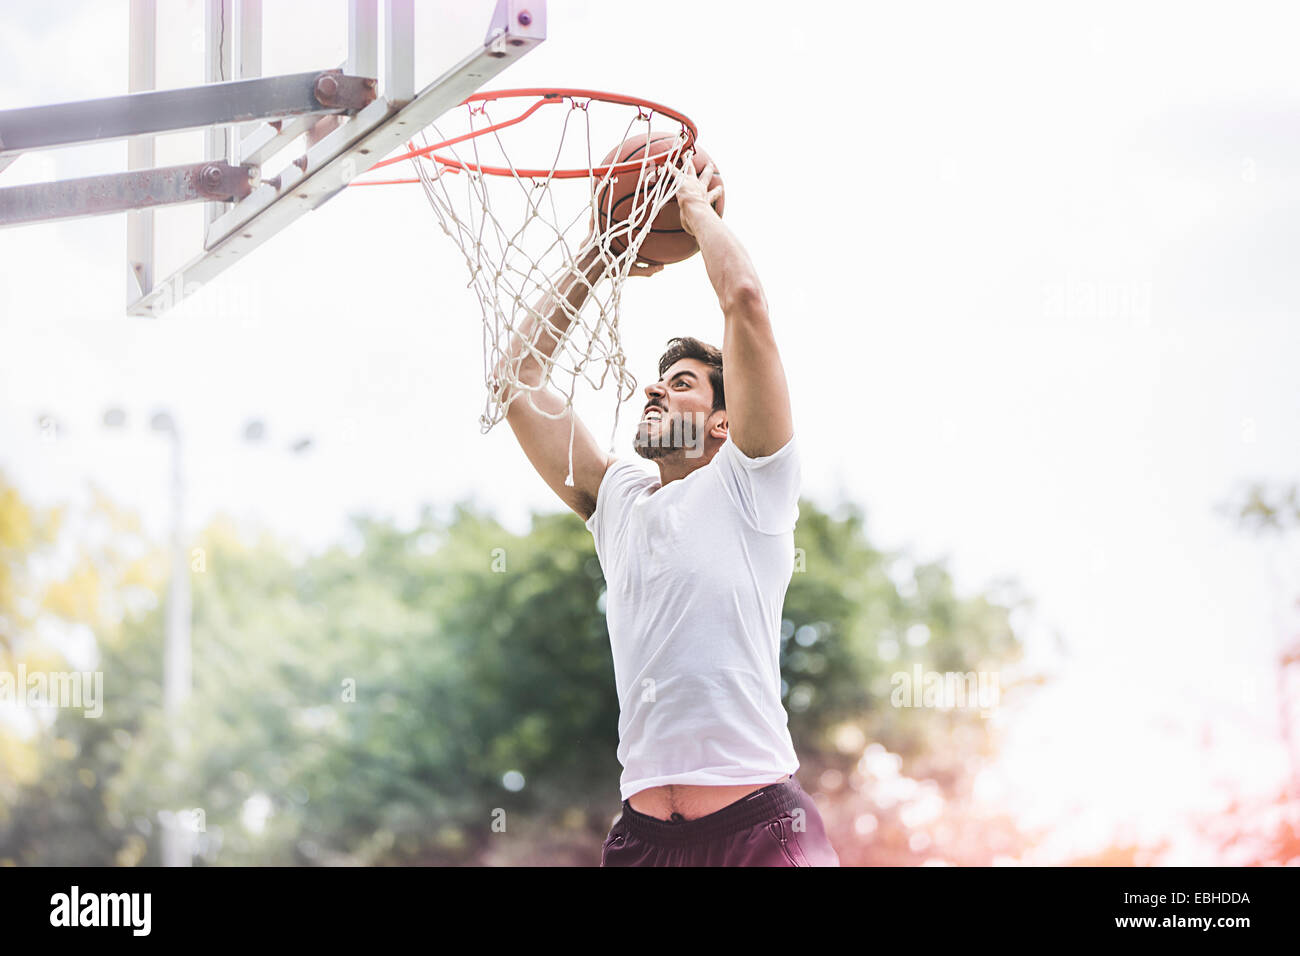 Young male basketball player jumping with ball to score - Stock Image